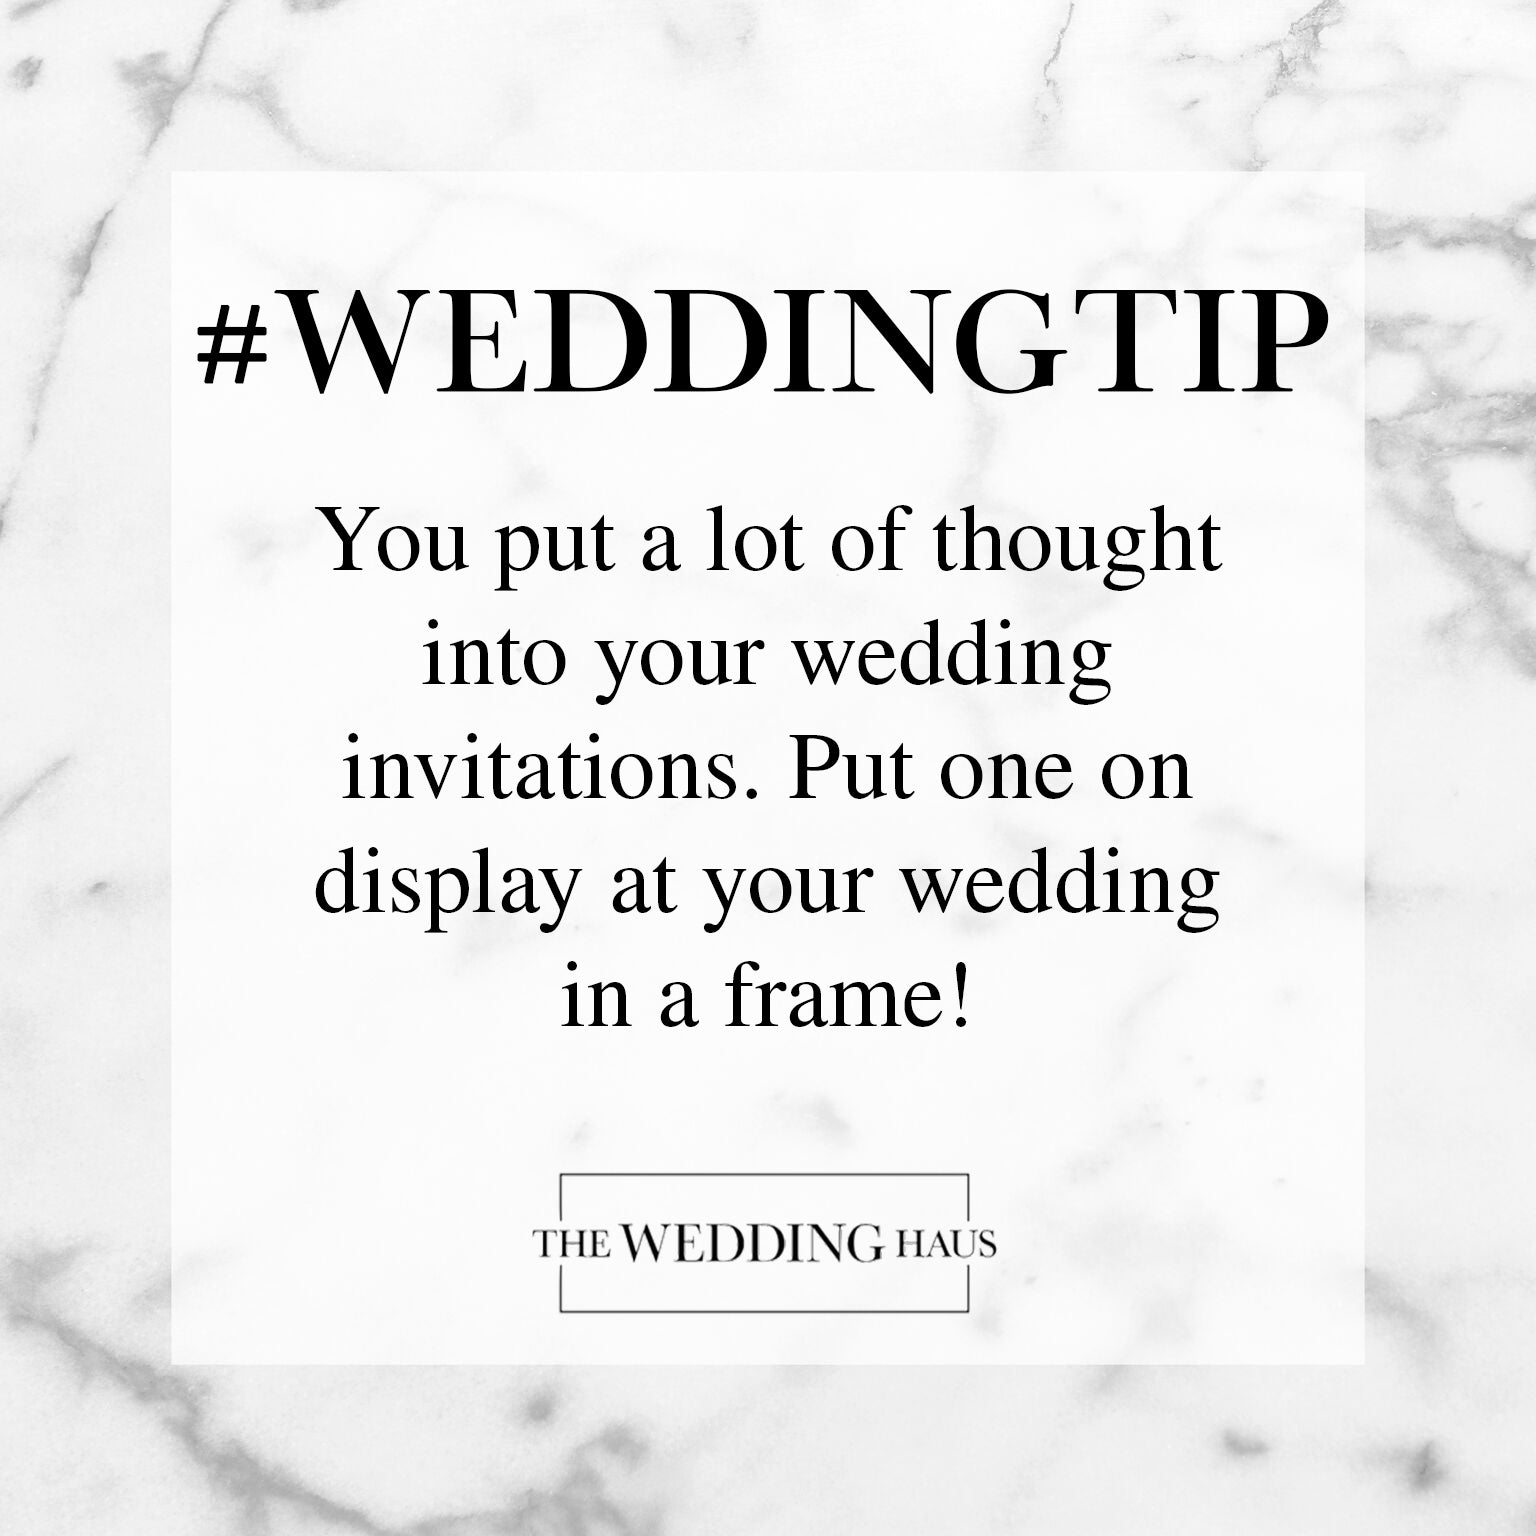 Wedding Invitation Tip from The Wedding Haus